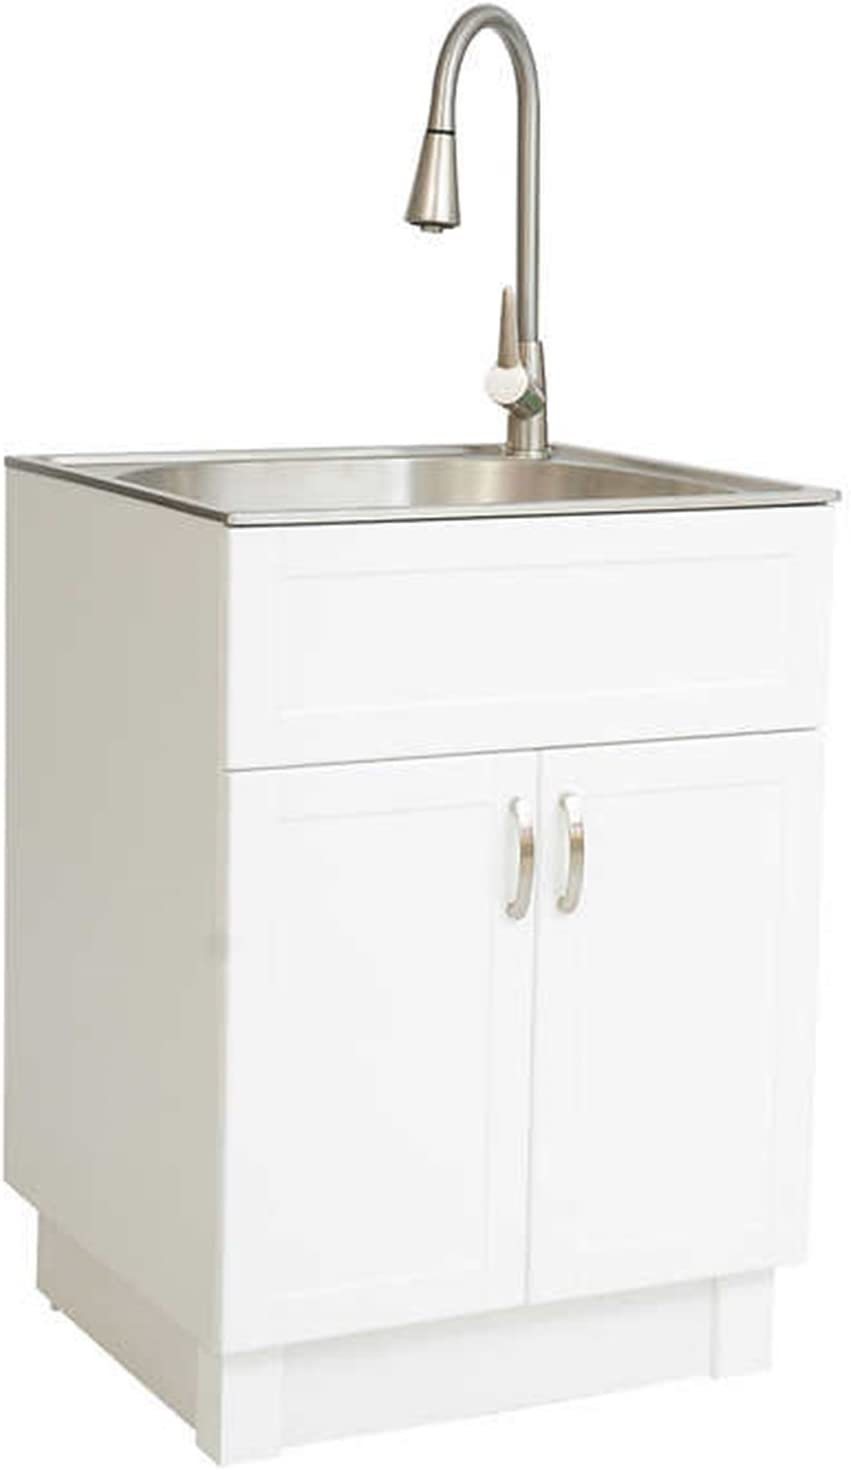 Sink Cabinet. Transform Utility Sink with Flexible Faucet ...